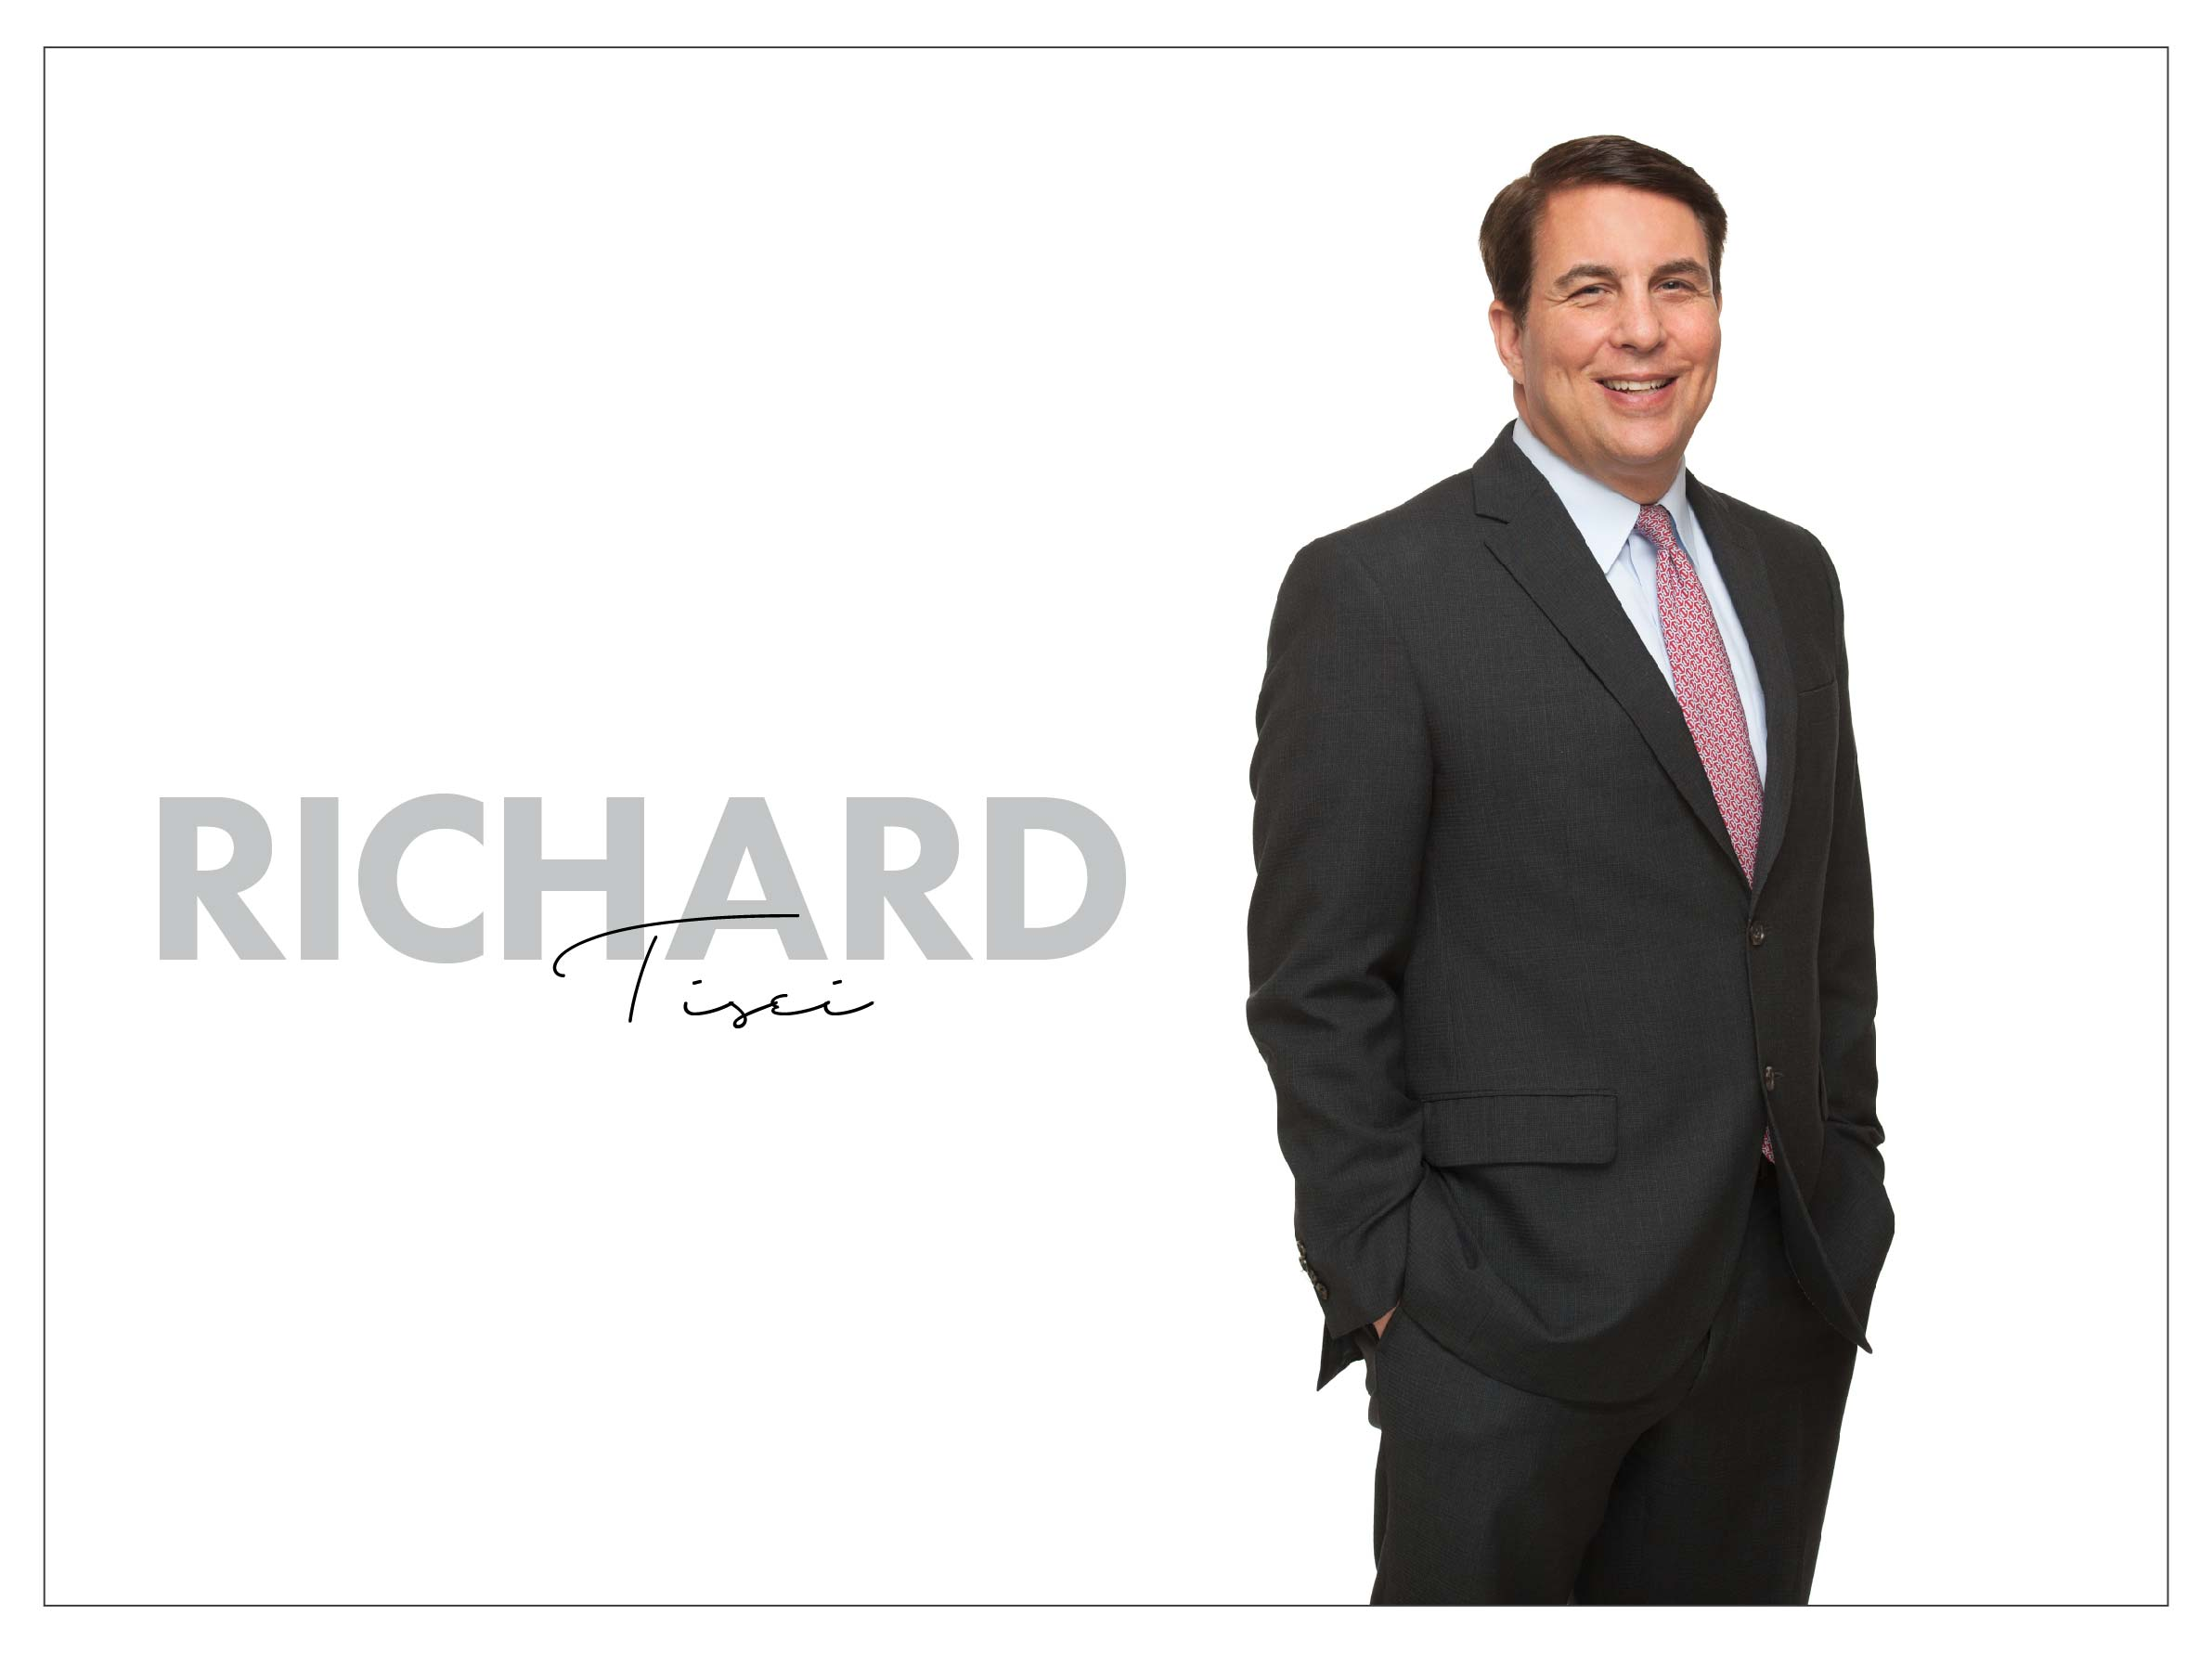 Richard Tisei Headshot